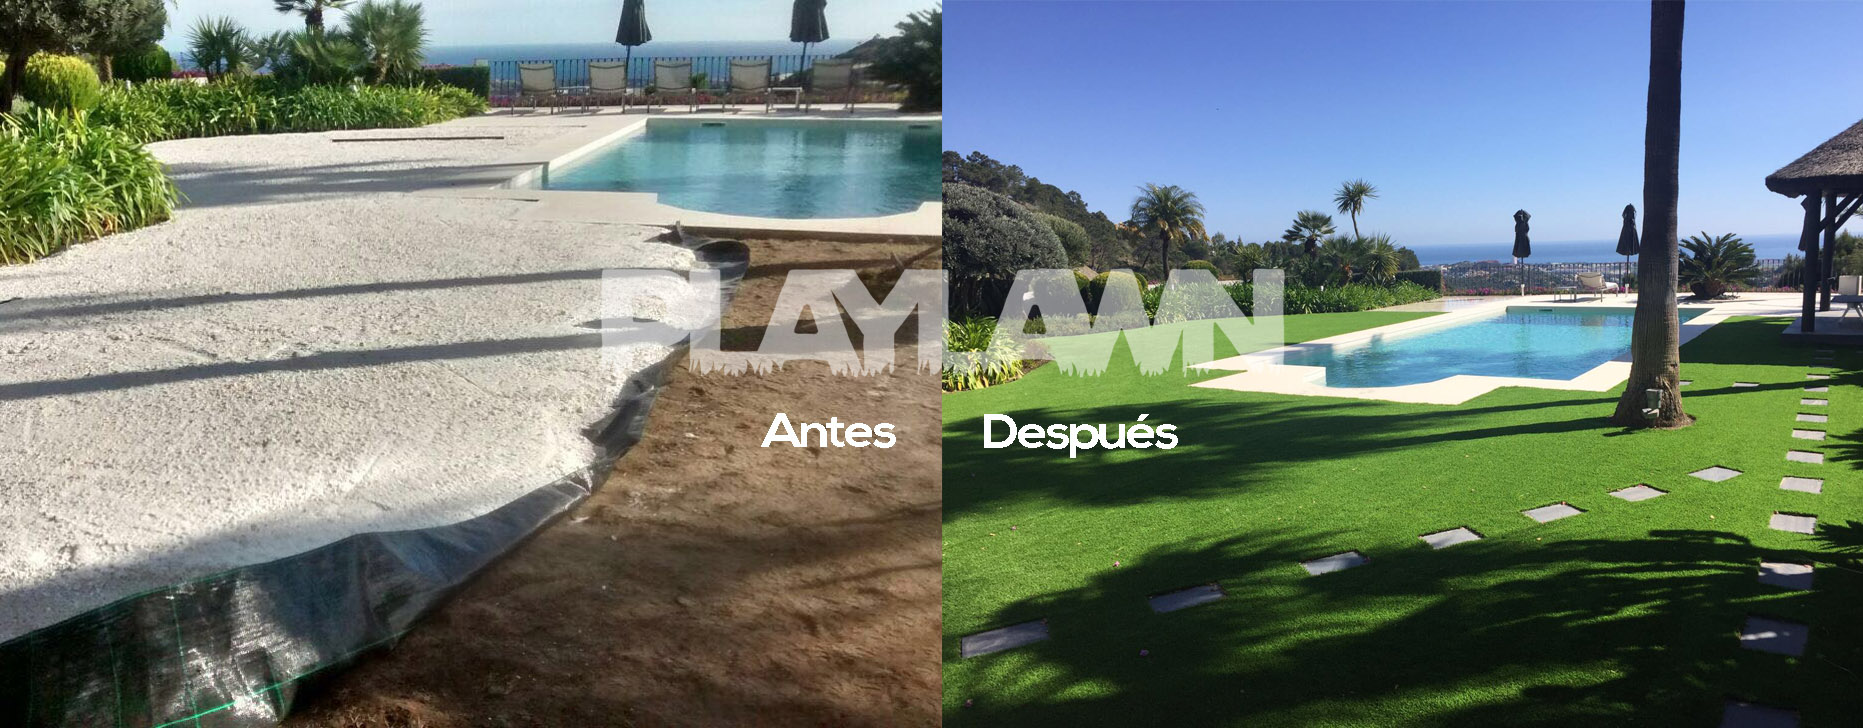 Antes y despu s archivos playlawn - Cesped artificial malaga ...